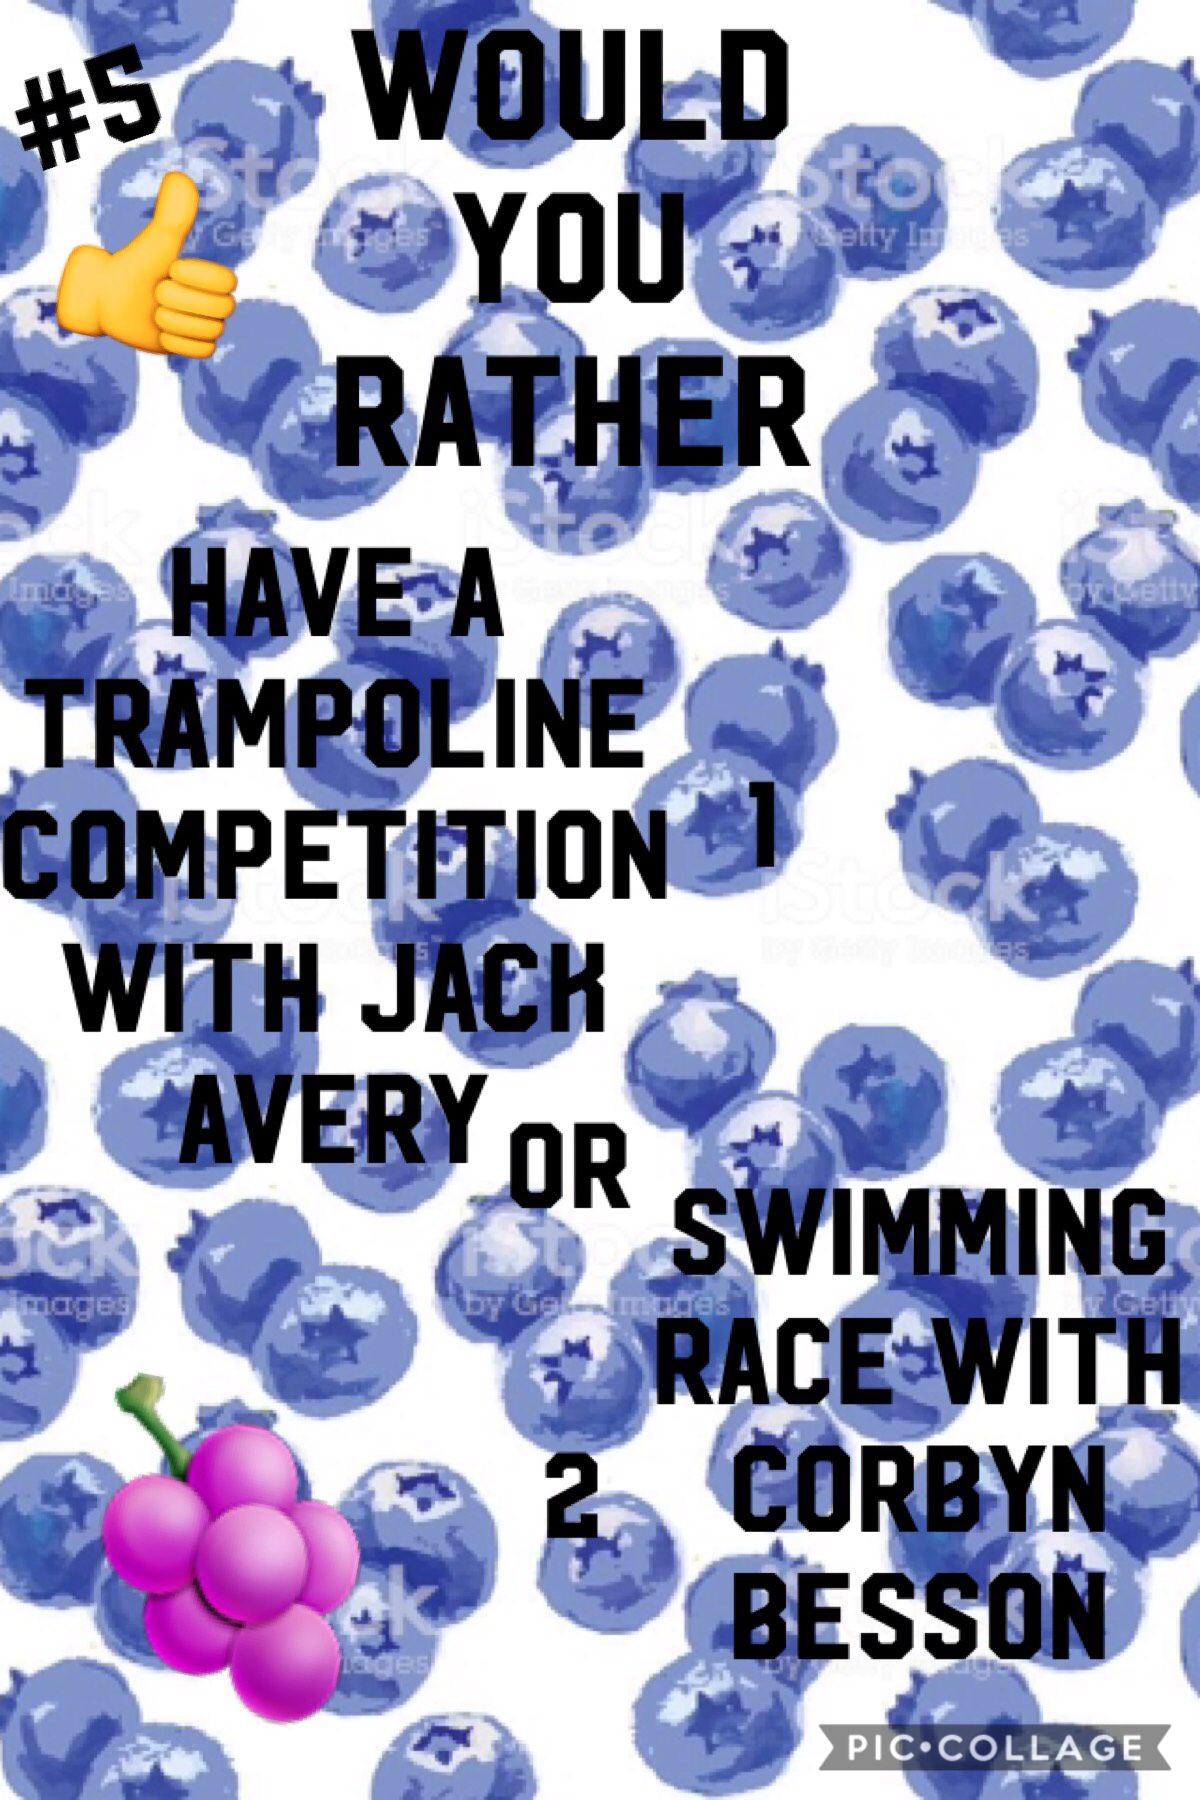 🍇Tap🍇  This is probably a silly question but it was the first thing that came to my head. If I had to pick one, I would pick 1 😀